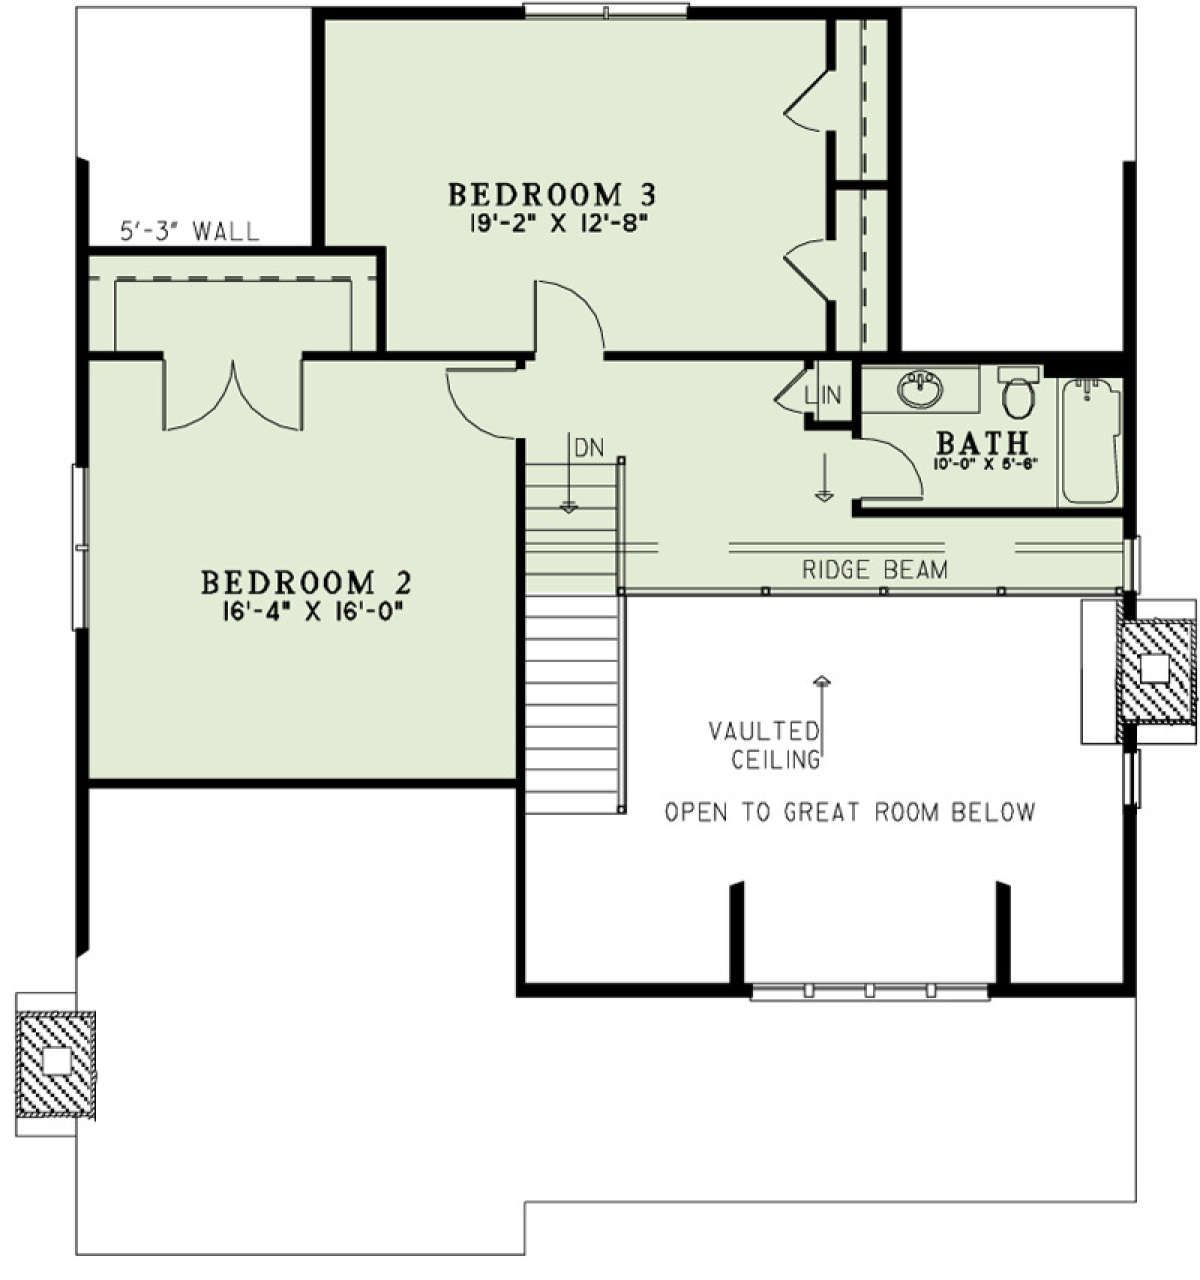 Cottage Plan: 2,637 Square Feet, 3 Bedrooms, 2.5 Bathrooms - 110-01012